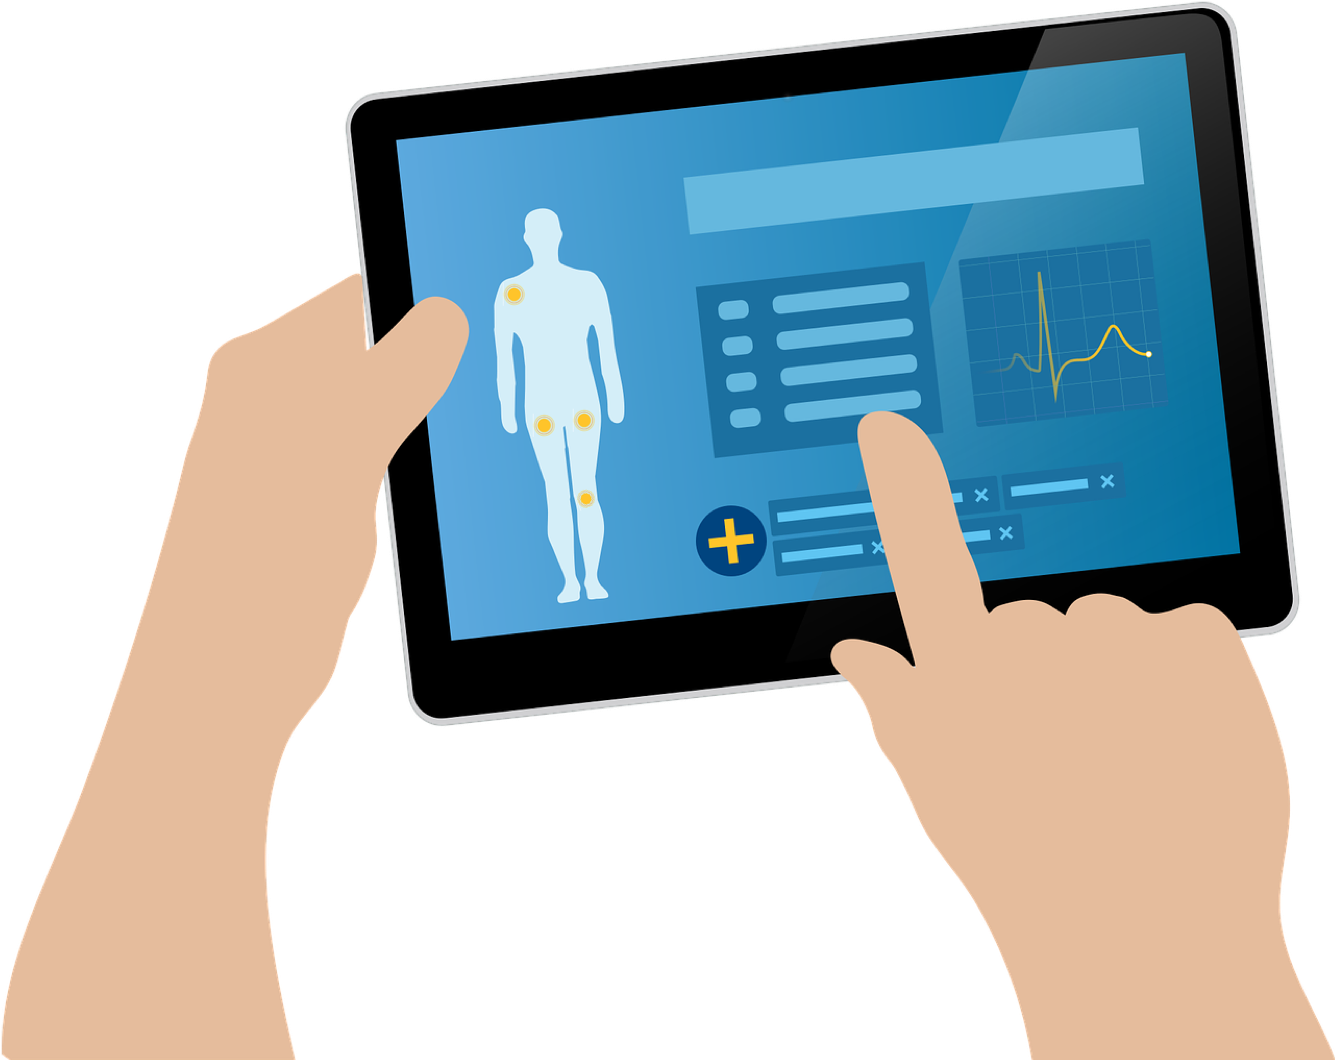 Bmj Technology Blog 99 Electronic Toolbox 10 Combines We Decided To See If Could Create An Evidence Based Solution Developed With The Patient In Mind Do This Our Oxford Team Created A Digital